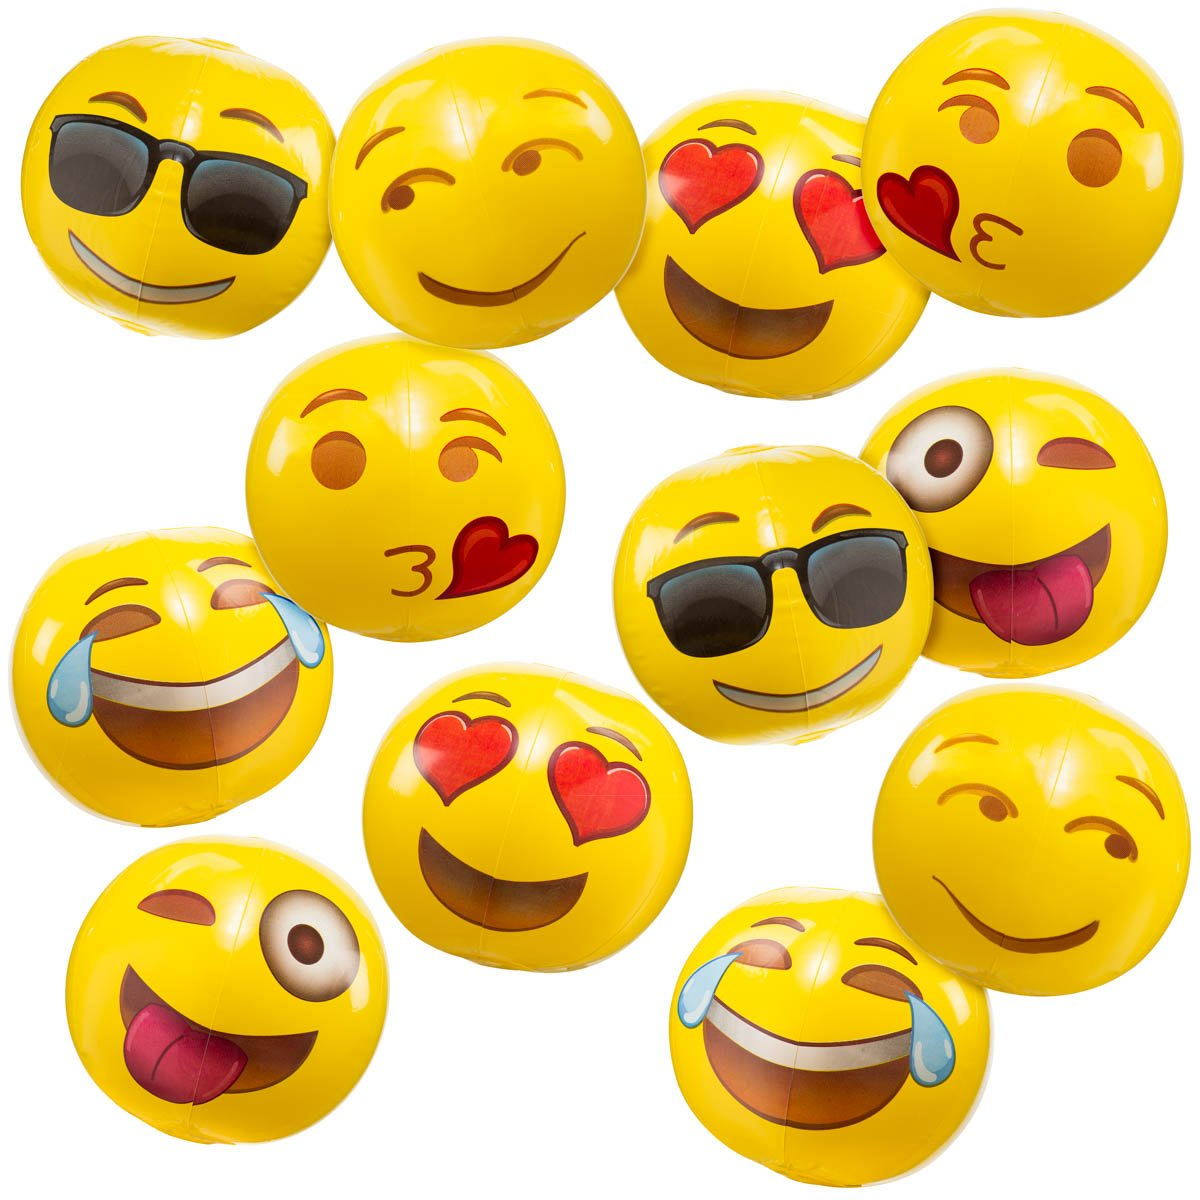 Go Toys Emoji Inflatable Beach Balls 8'' when inflated | Pack of 12 | Unique designs | Perfect for Parties, Games, and more, Your kids will enjoy it at the beach, sand, Bathtubs. by Go Toys